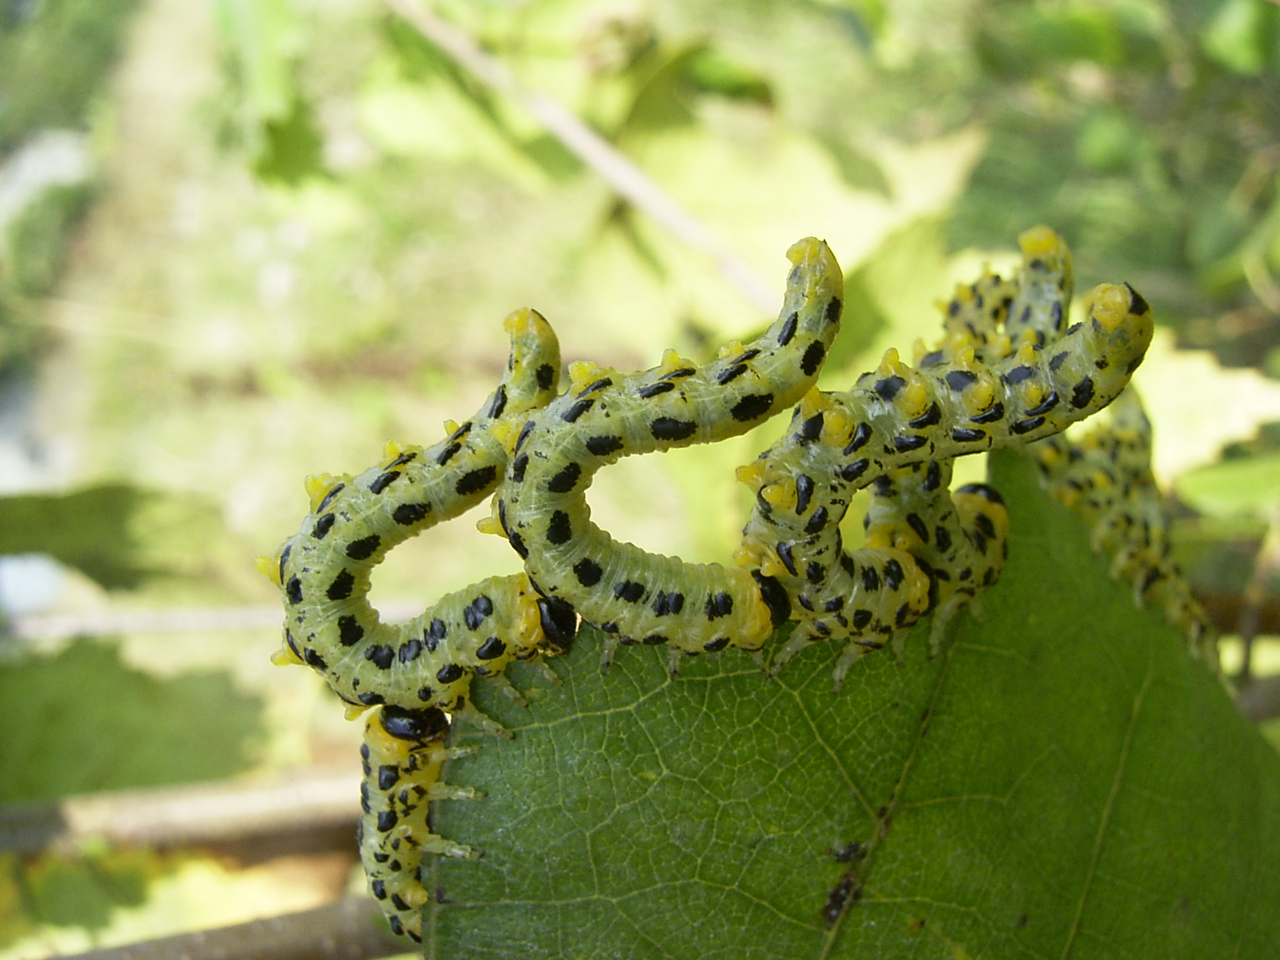 Larvae of Craesus septentrionalis, a sawfly showing 6 pairs of pro-legs.